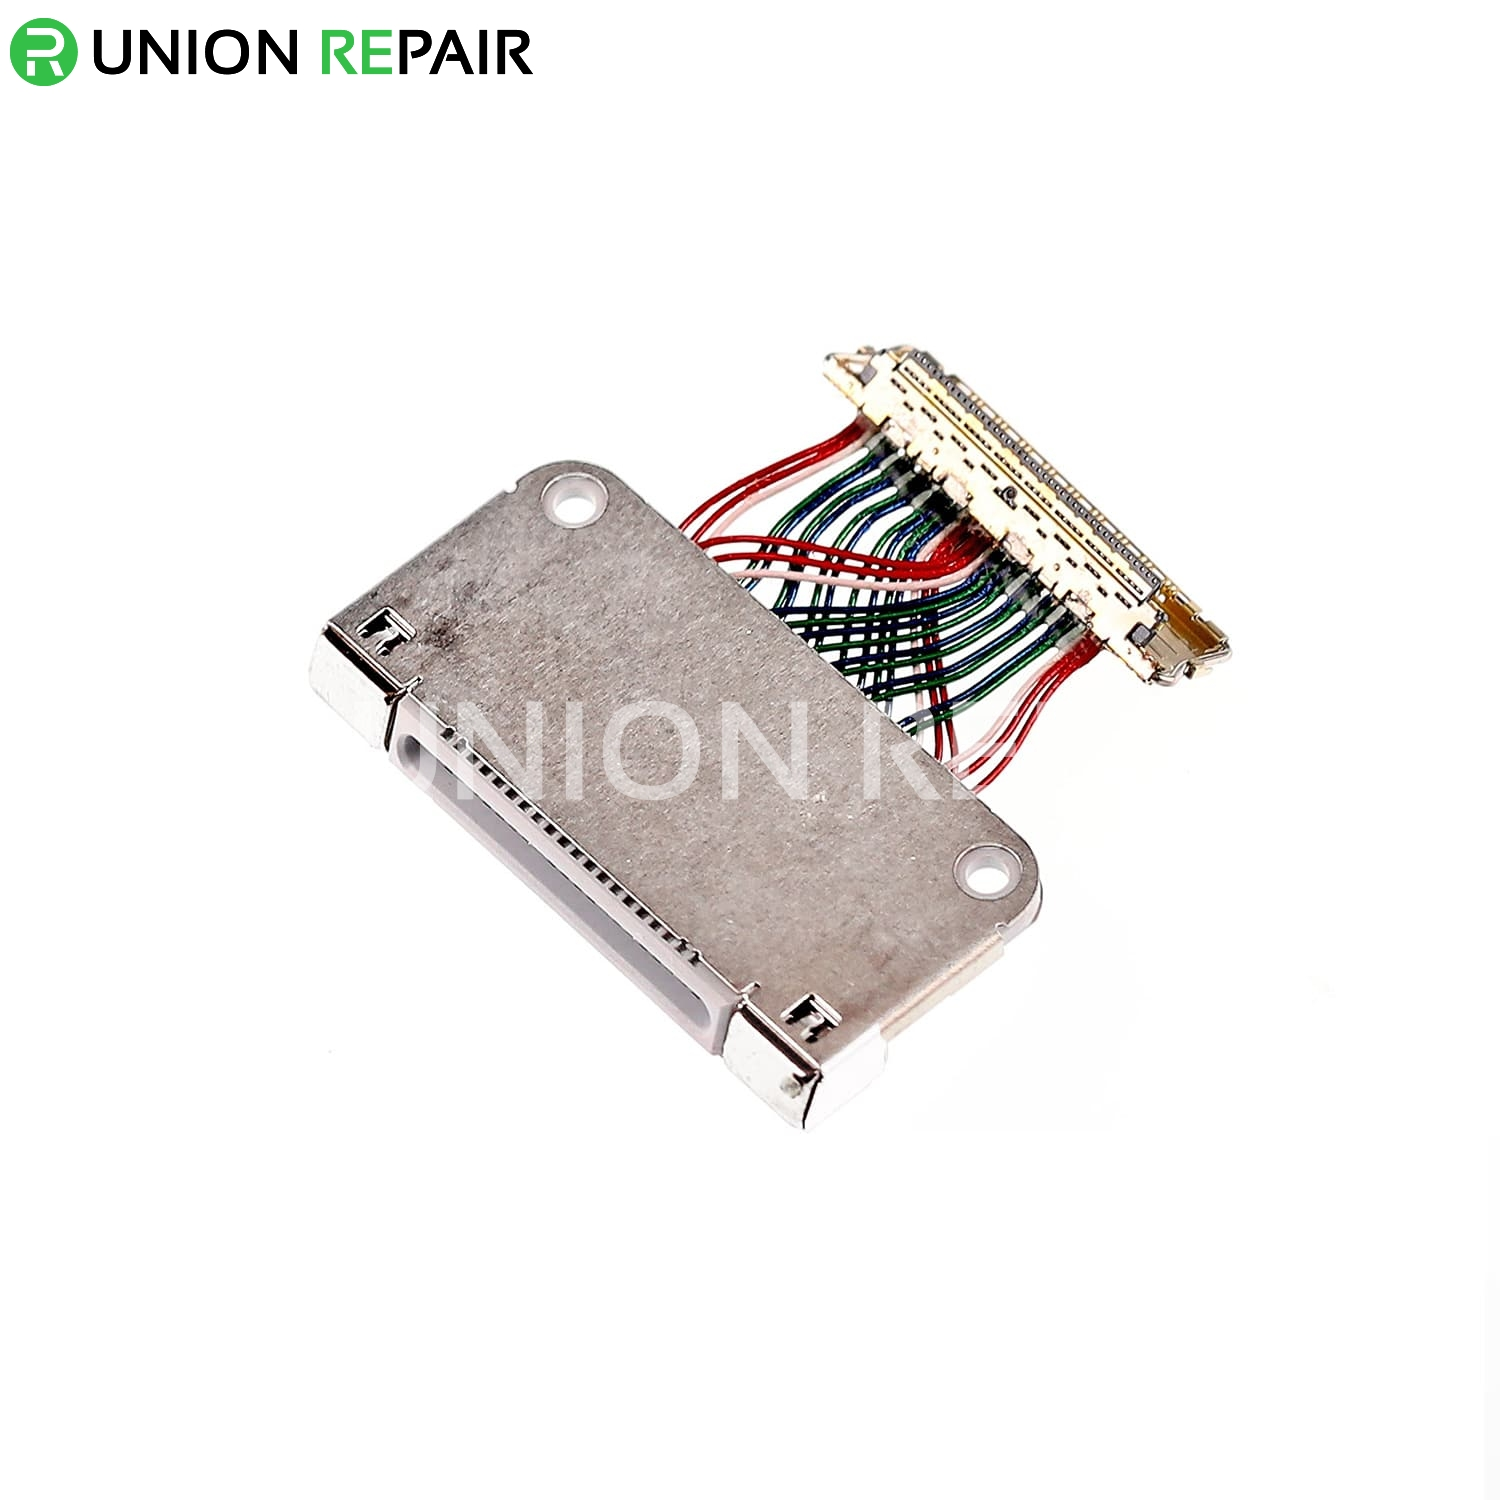 Replacement for Microsoft Surface Pro 4/New Pro USB Charging Dock Connector